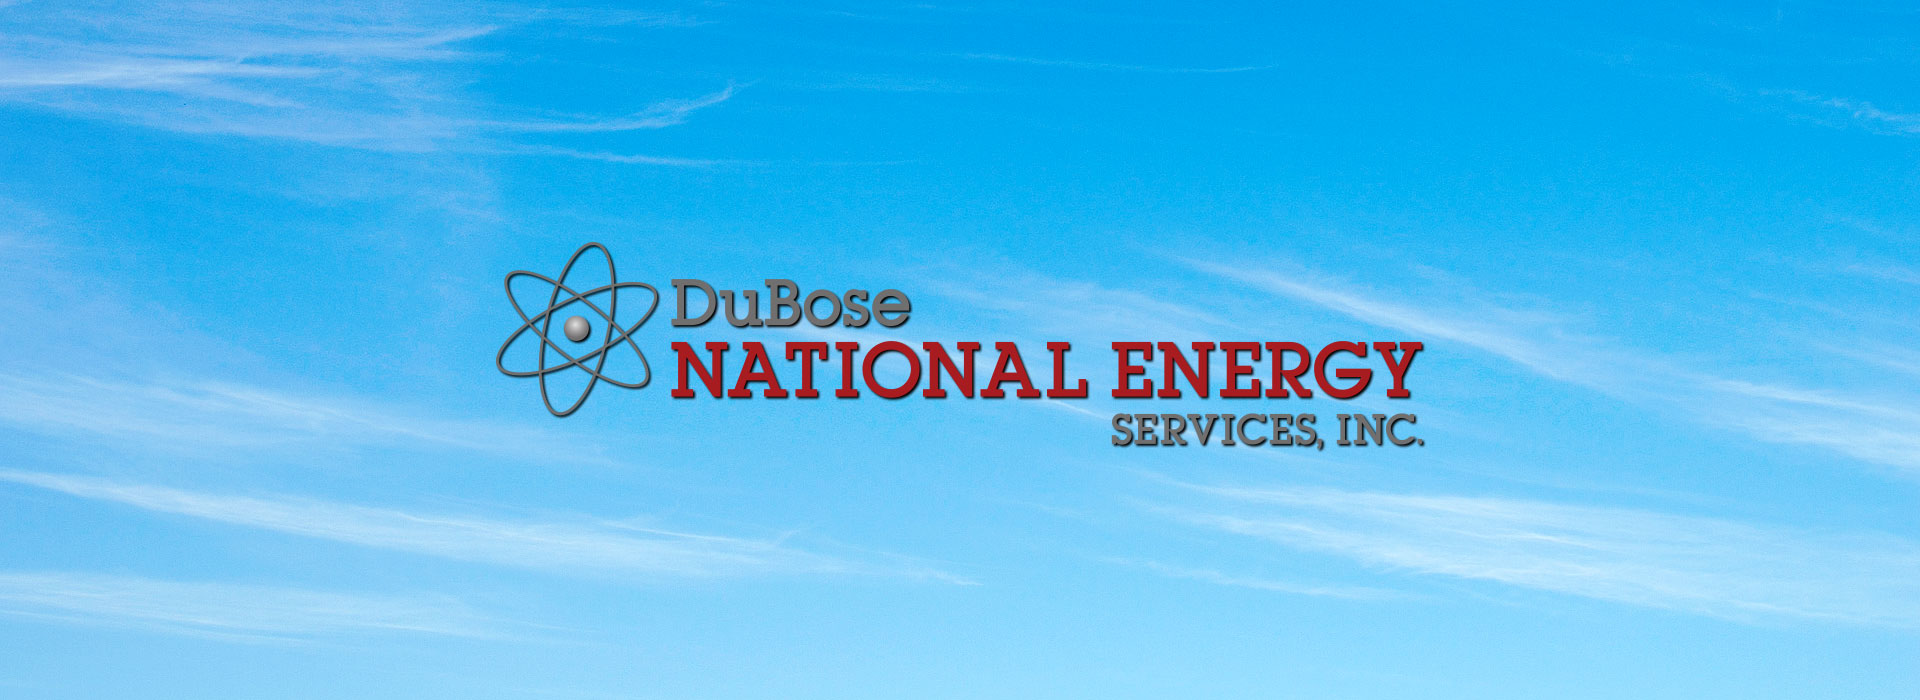 DuBose National Energy Services